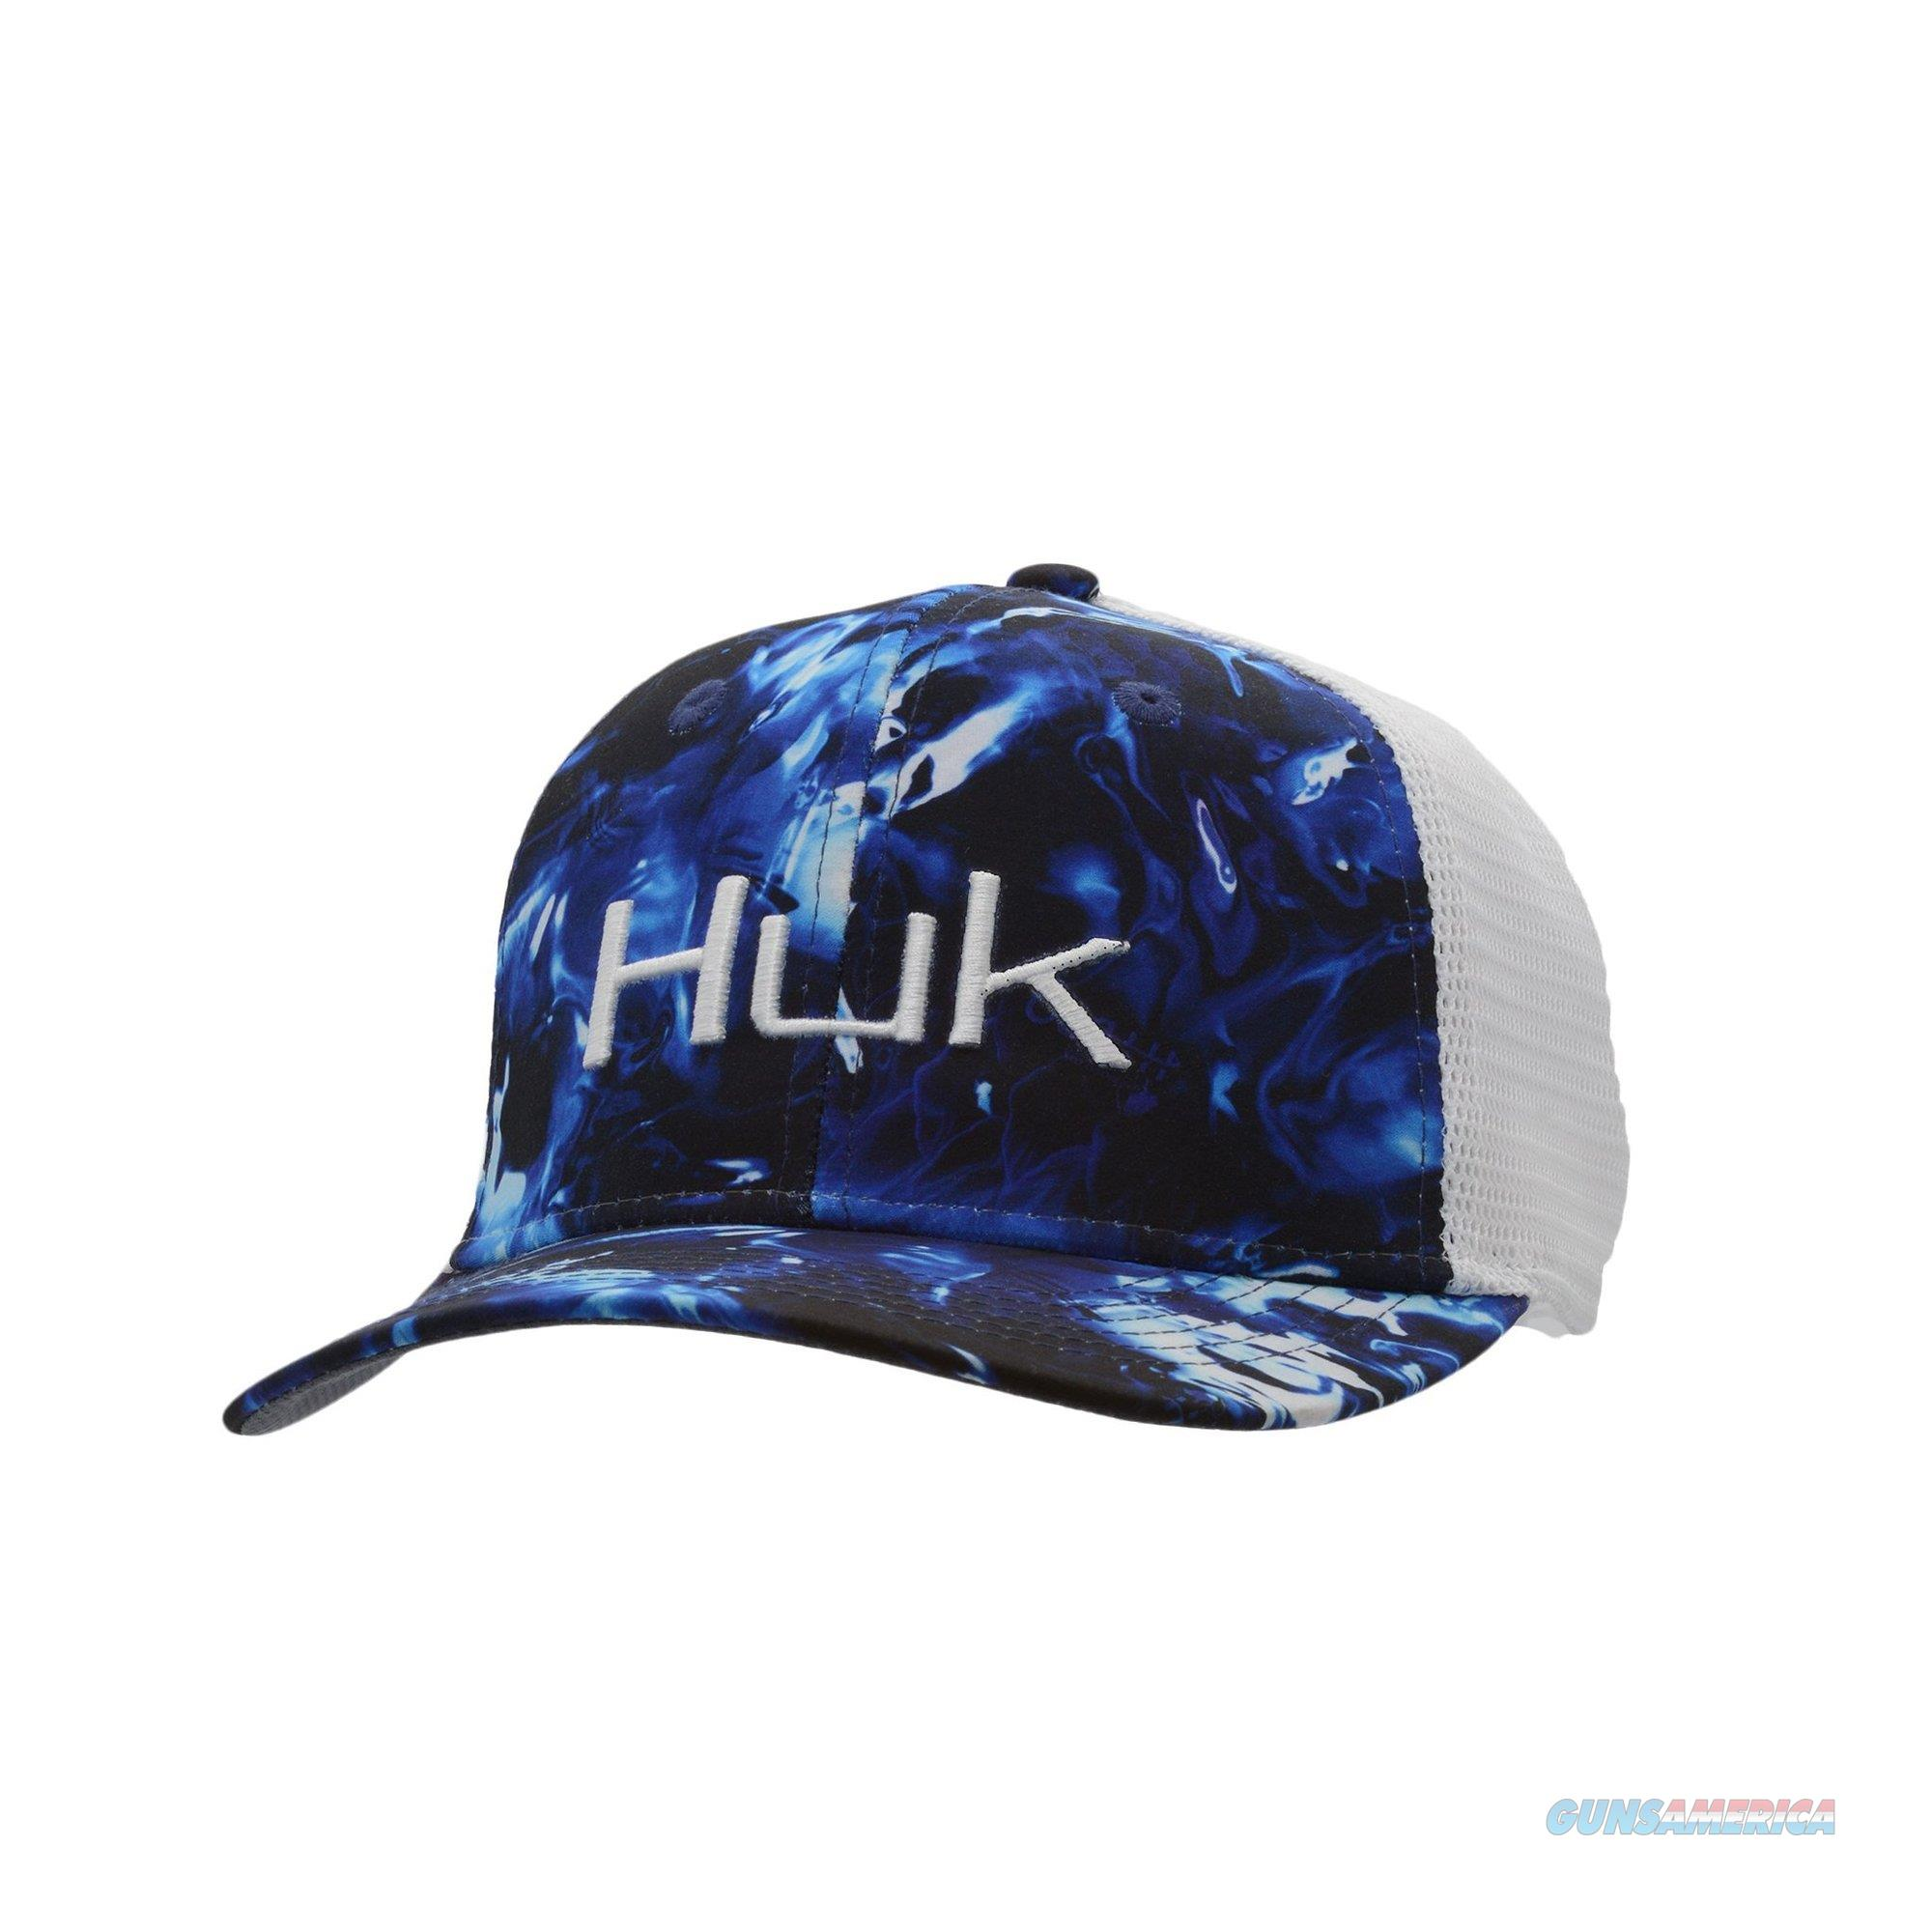 Huk Camo Trucker Hat Reflex  Non-Guns > Hunting Clothing and Equipment > Clothing > Shirts